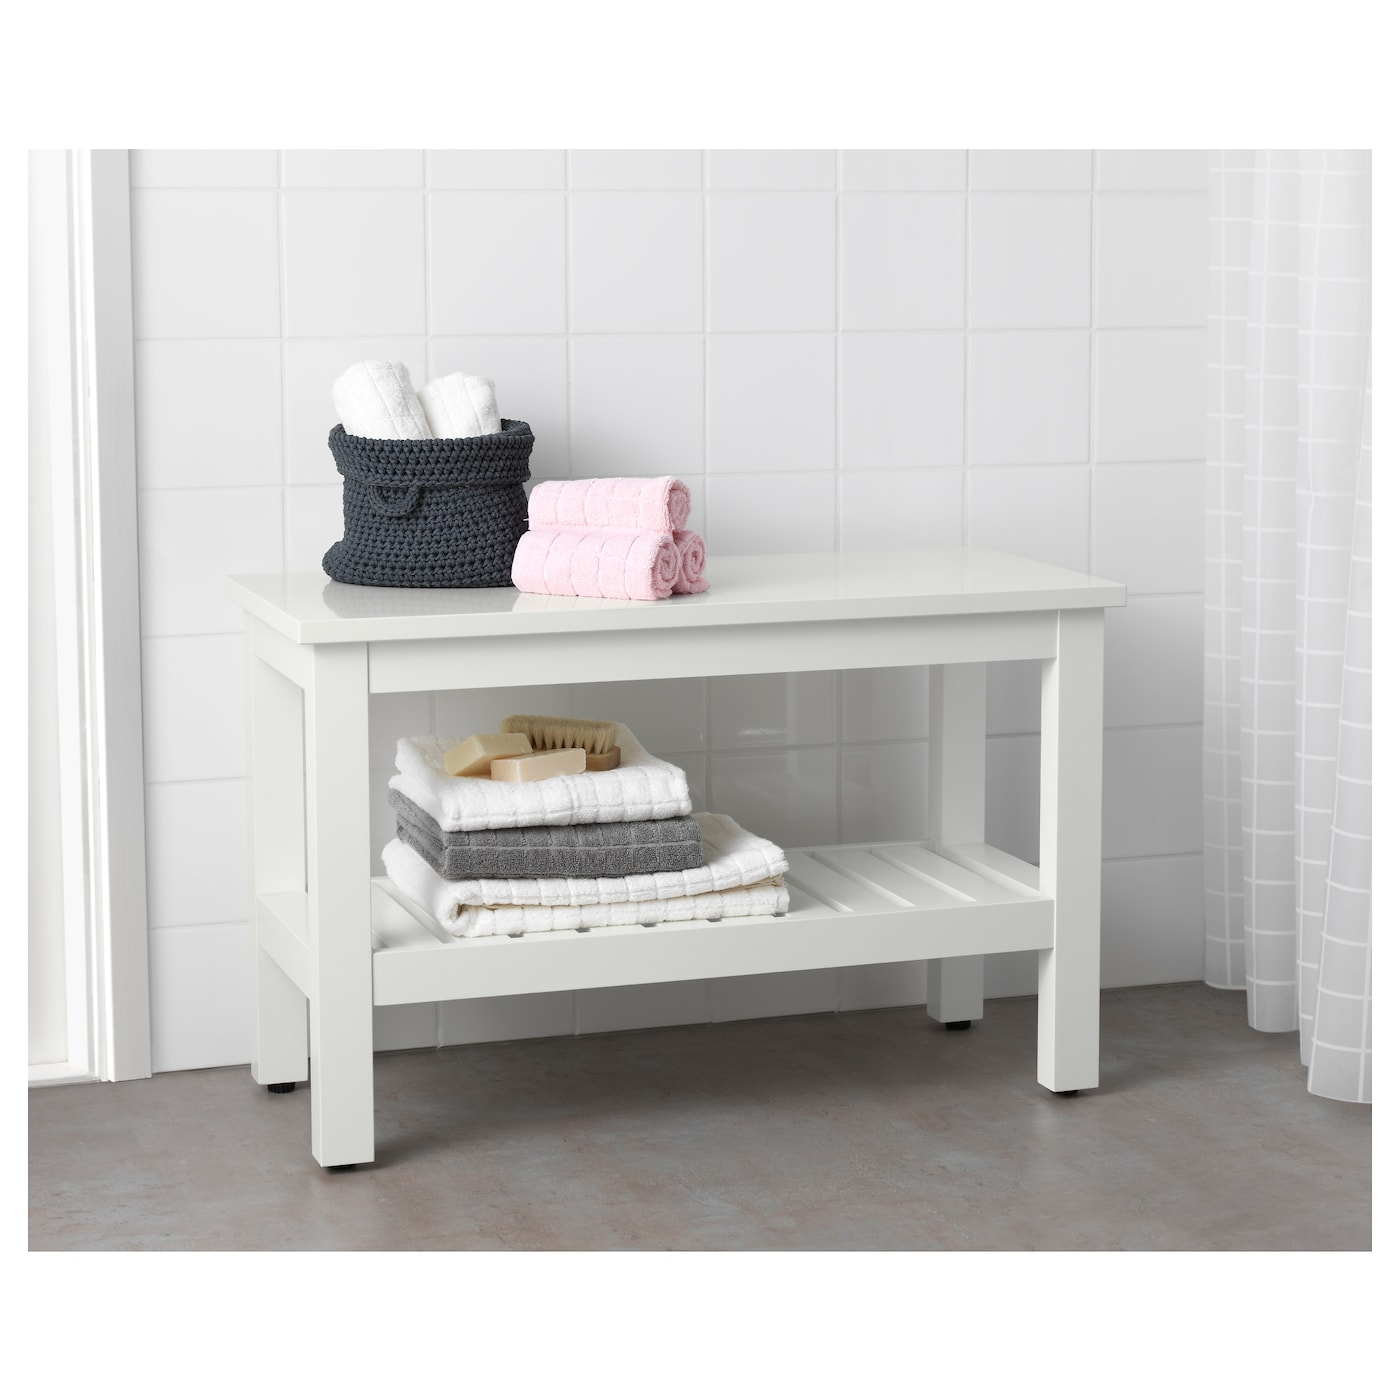 Top HEMNES Bank Wit 83 cm - IKEA ZH-27